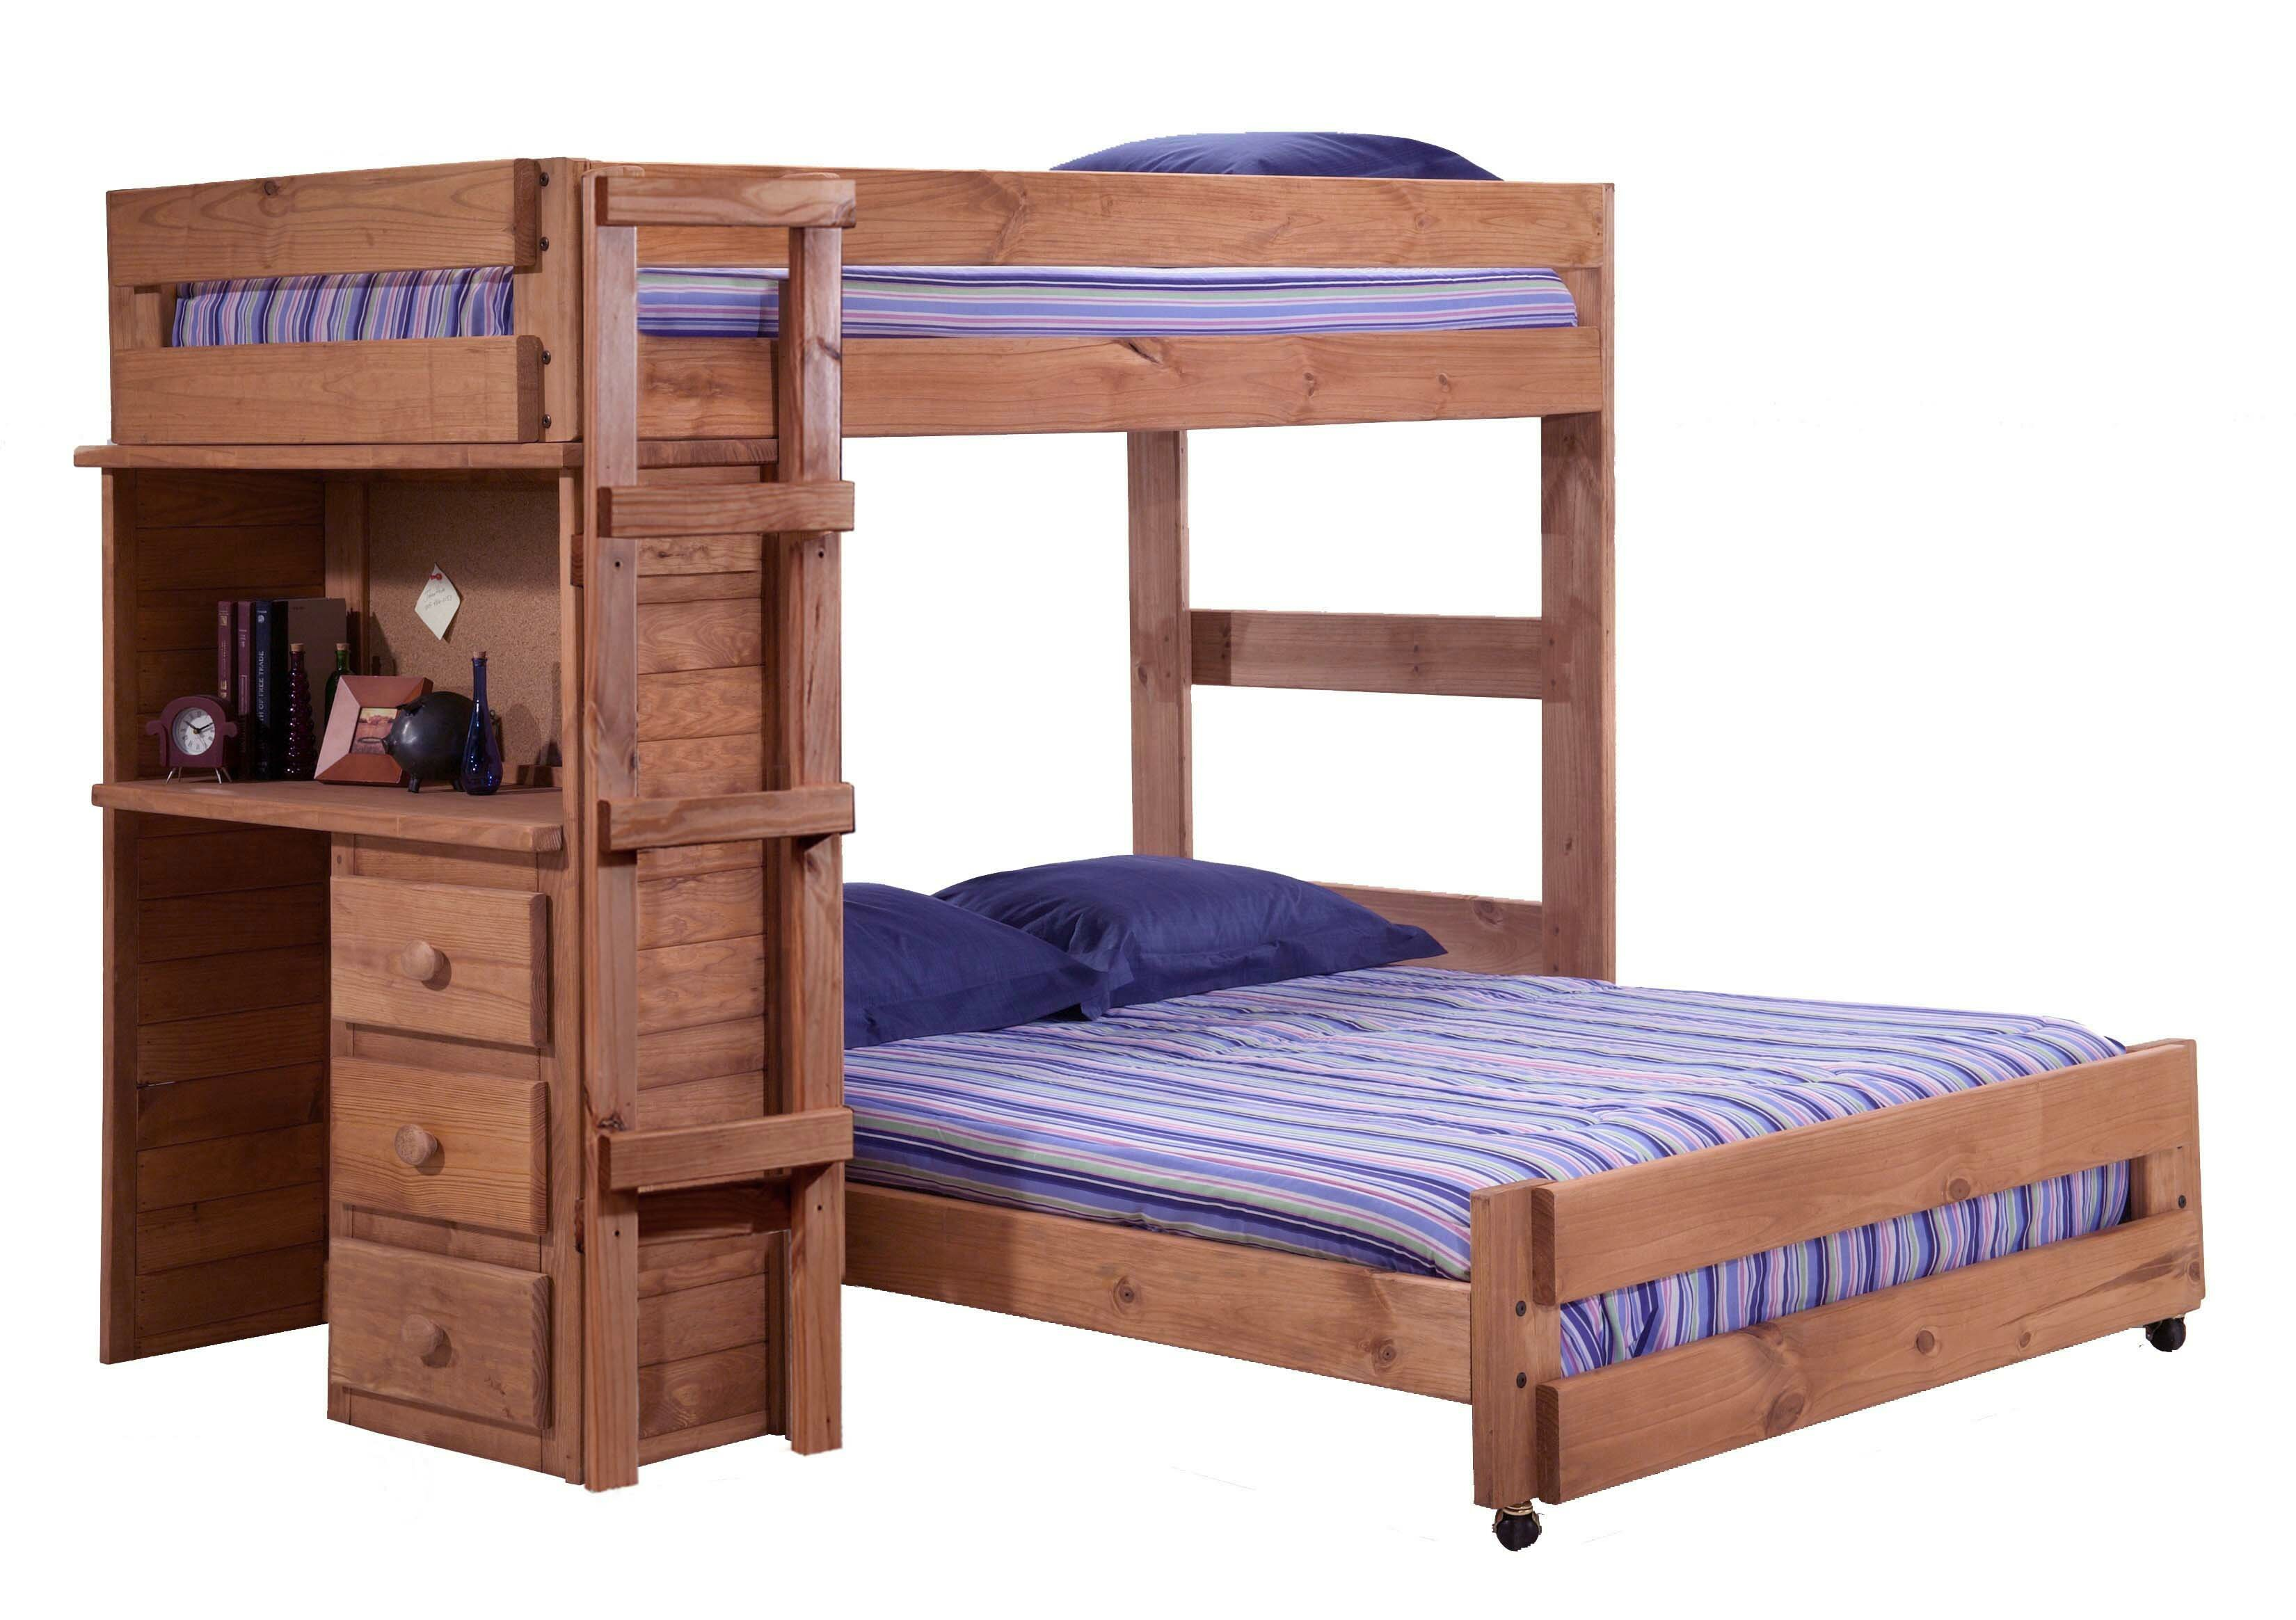 Harriet Bee Chumbley Twin Over Full Solid Wood L Shaped Bunk Beds With Built In Desk By Harriet Bee Wayfair